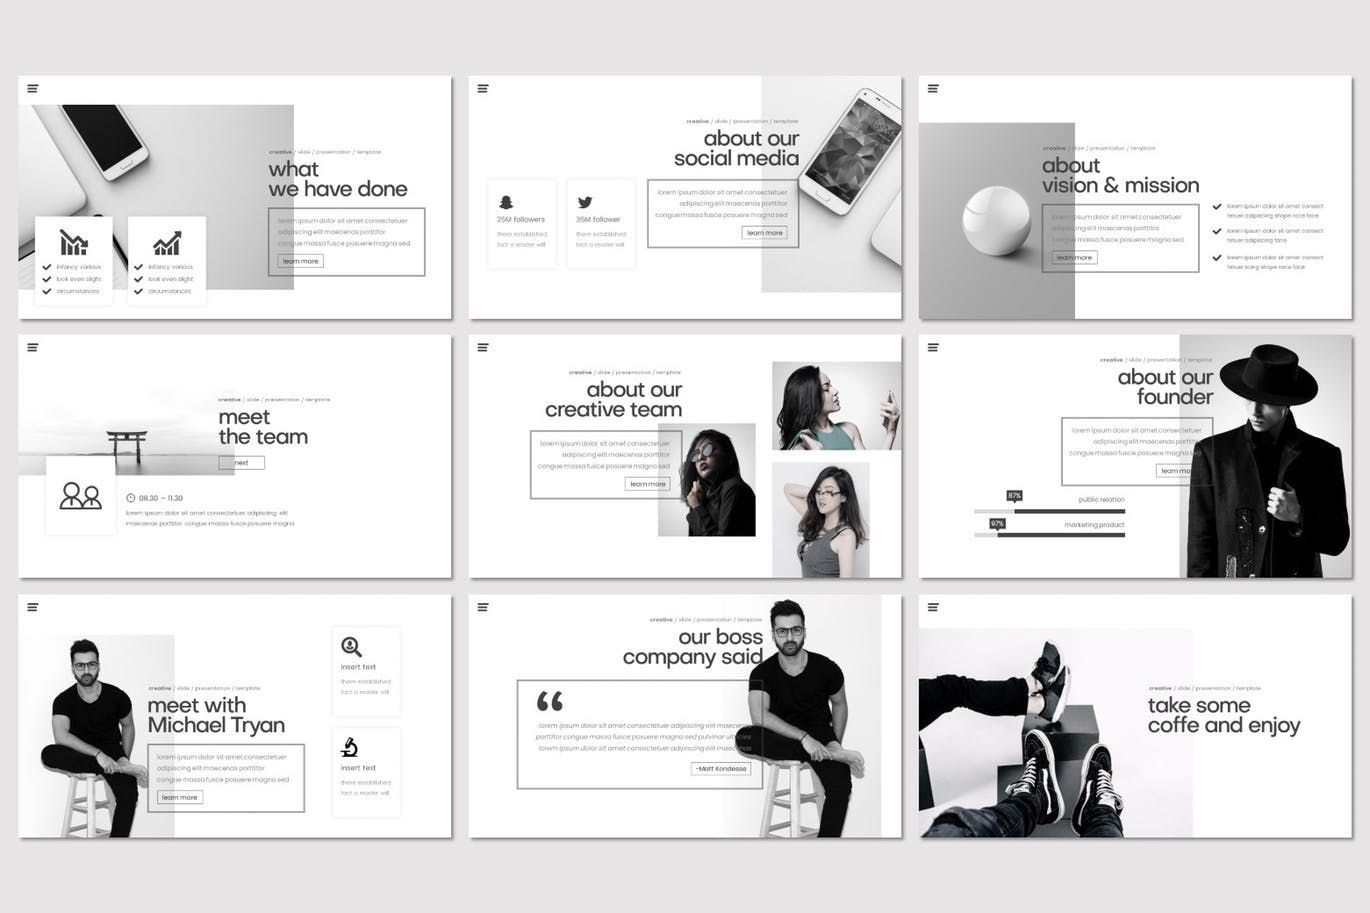 Kondese - PowerPoint Template, Slide 3, 07878, Presentation Templates — PoweredTemplate.com